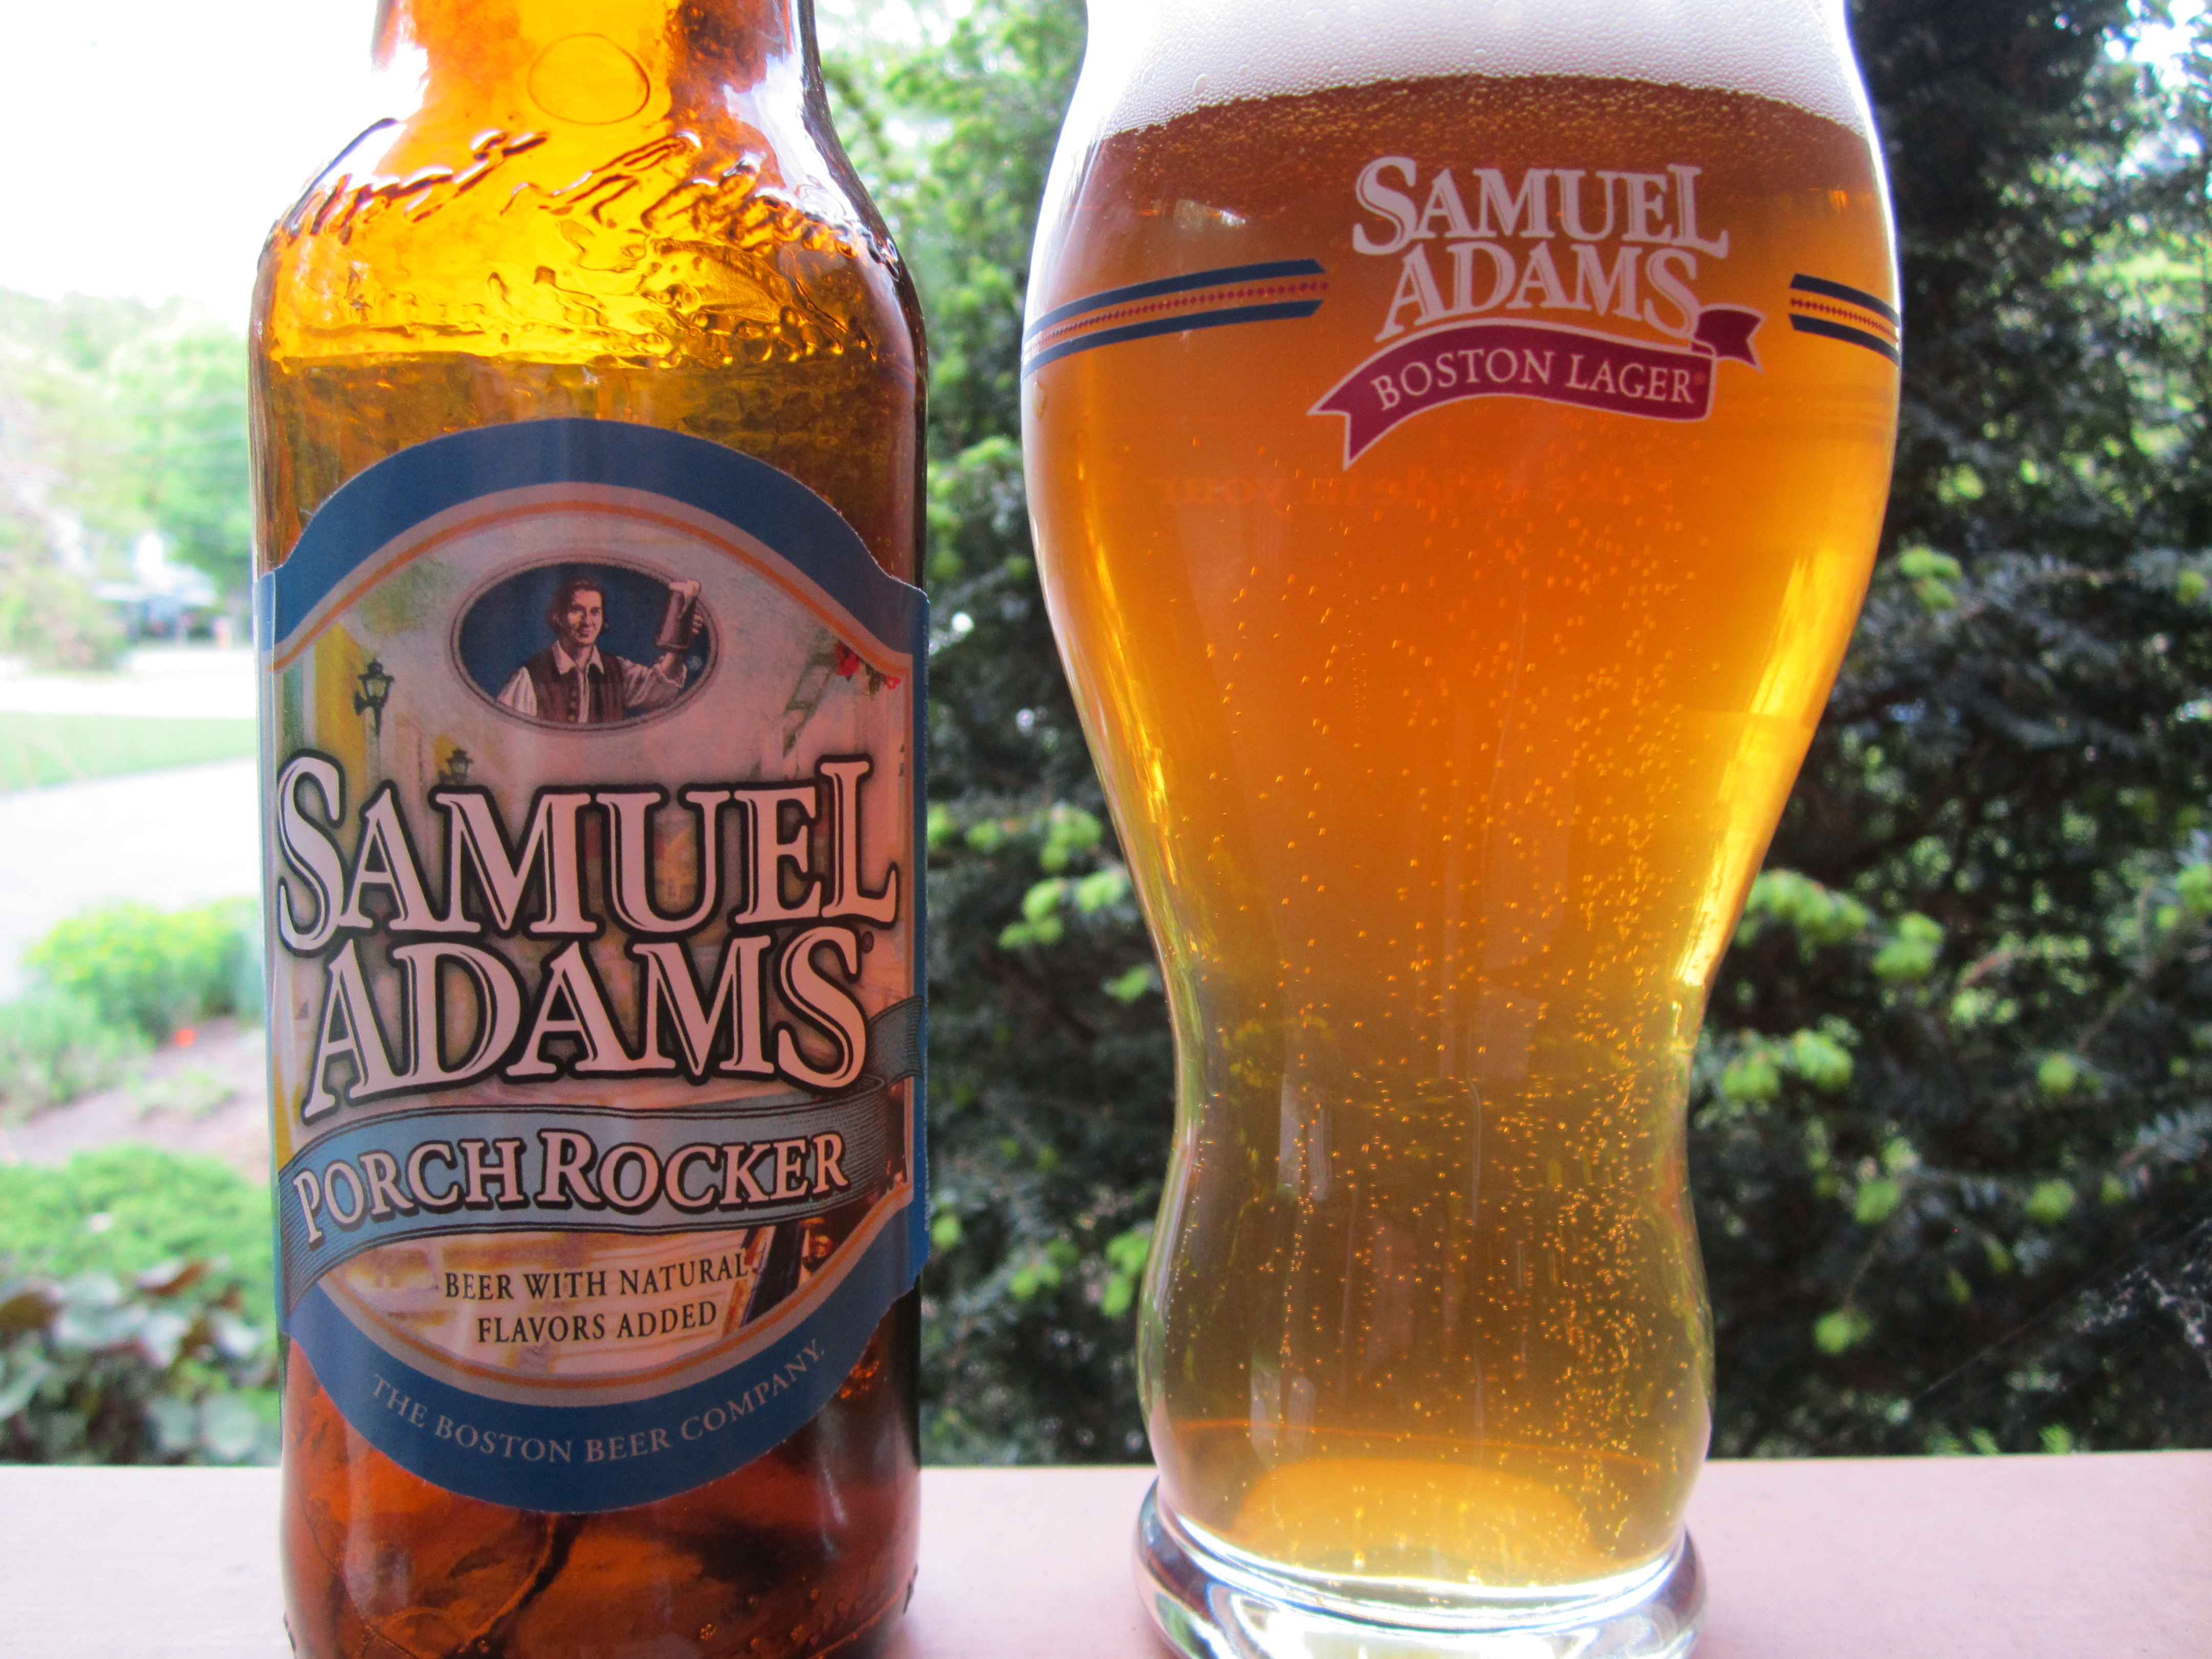 Sam Adams To Replace Budweiser As Red Sox Beer Sponsor